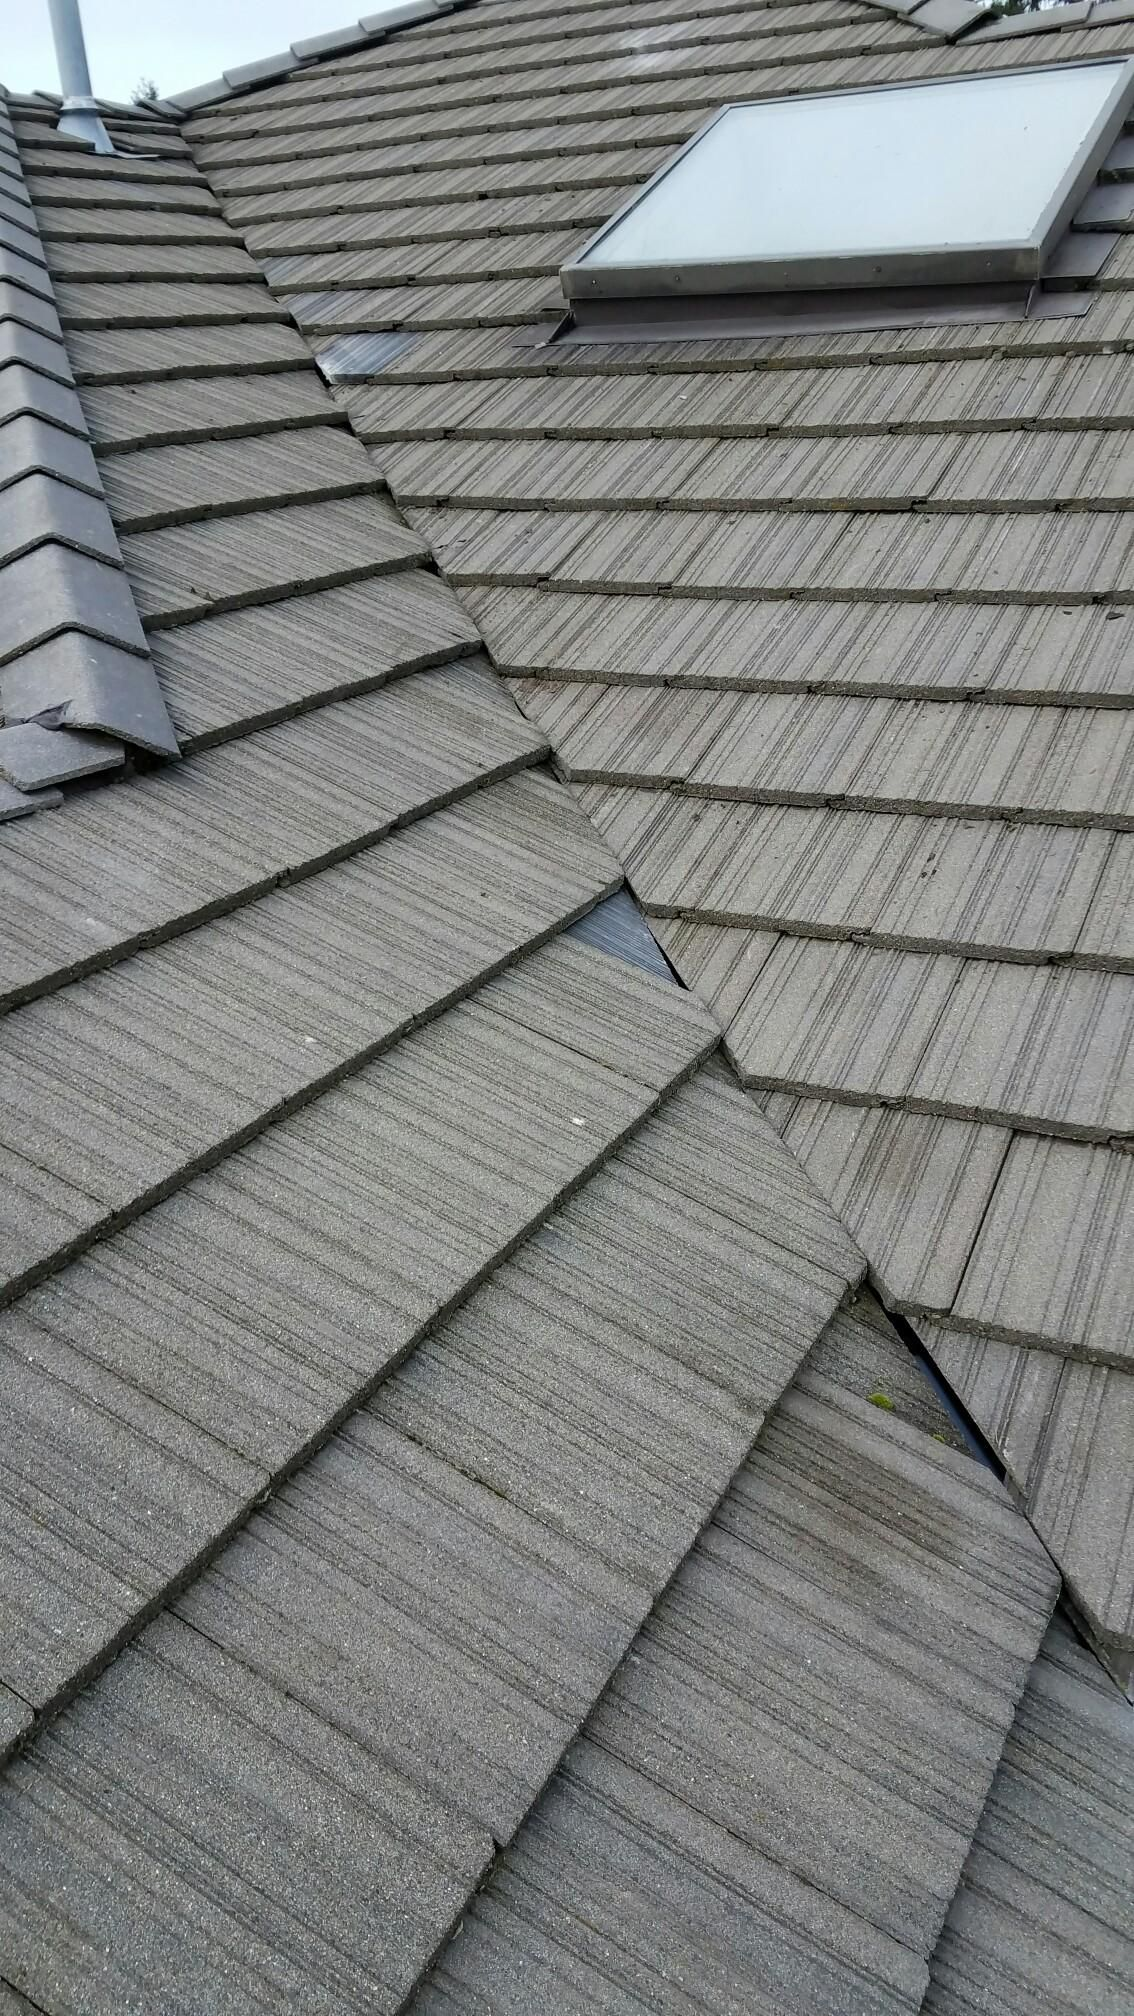 Tile Roof Repair Cleaning Vancouver Wa By Northwest Roof Maintenance Roof Maintenance Roof Repair Roofing